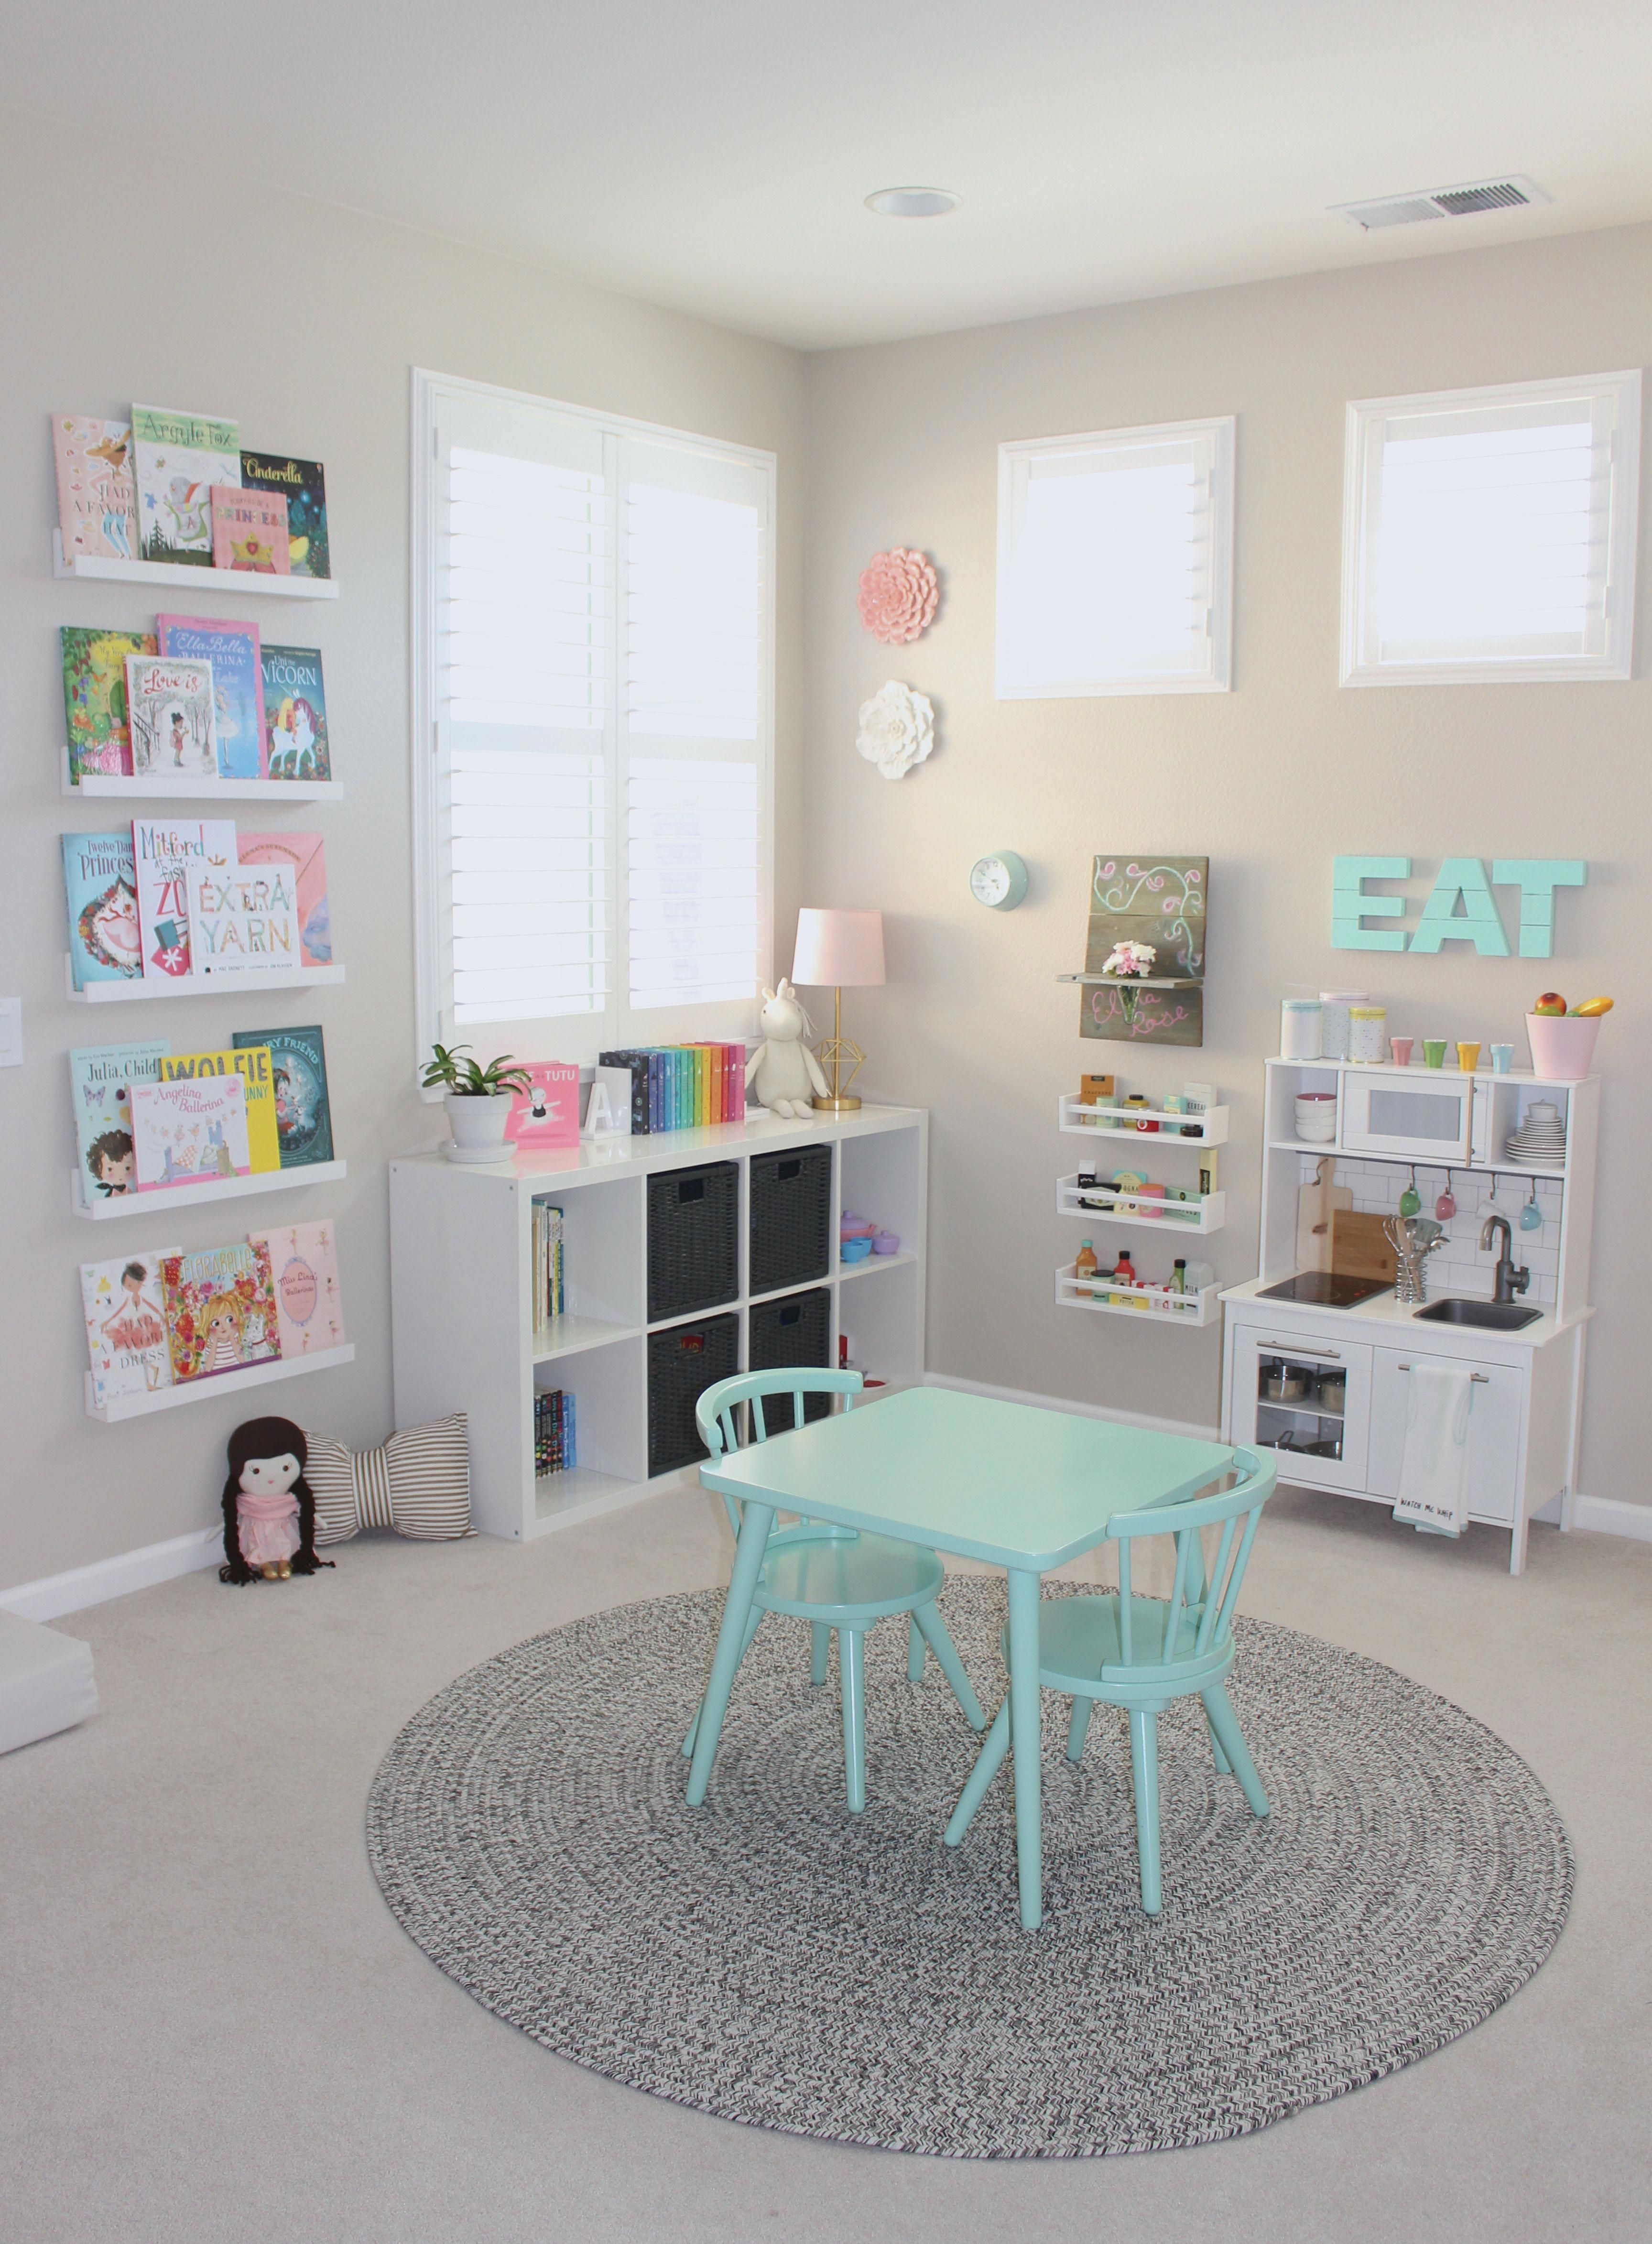 A Pretty In Pastels Playroom When I Designed Elena's